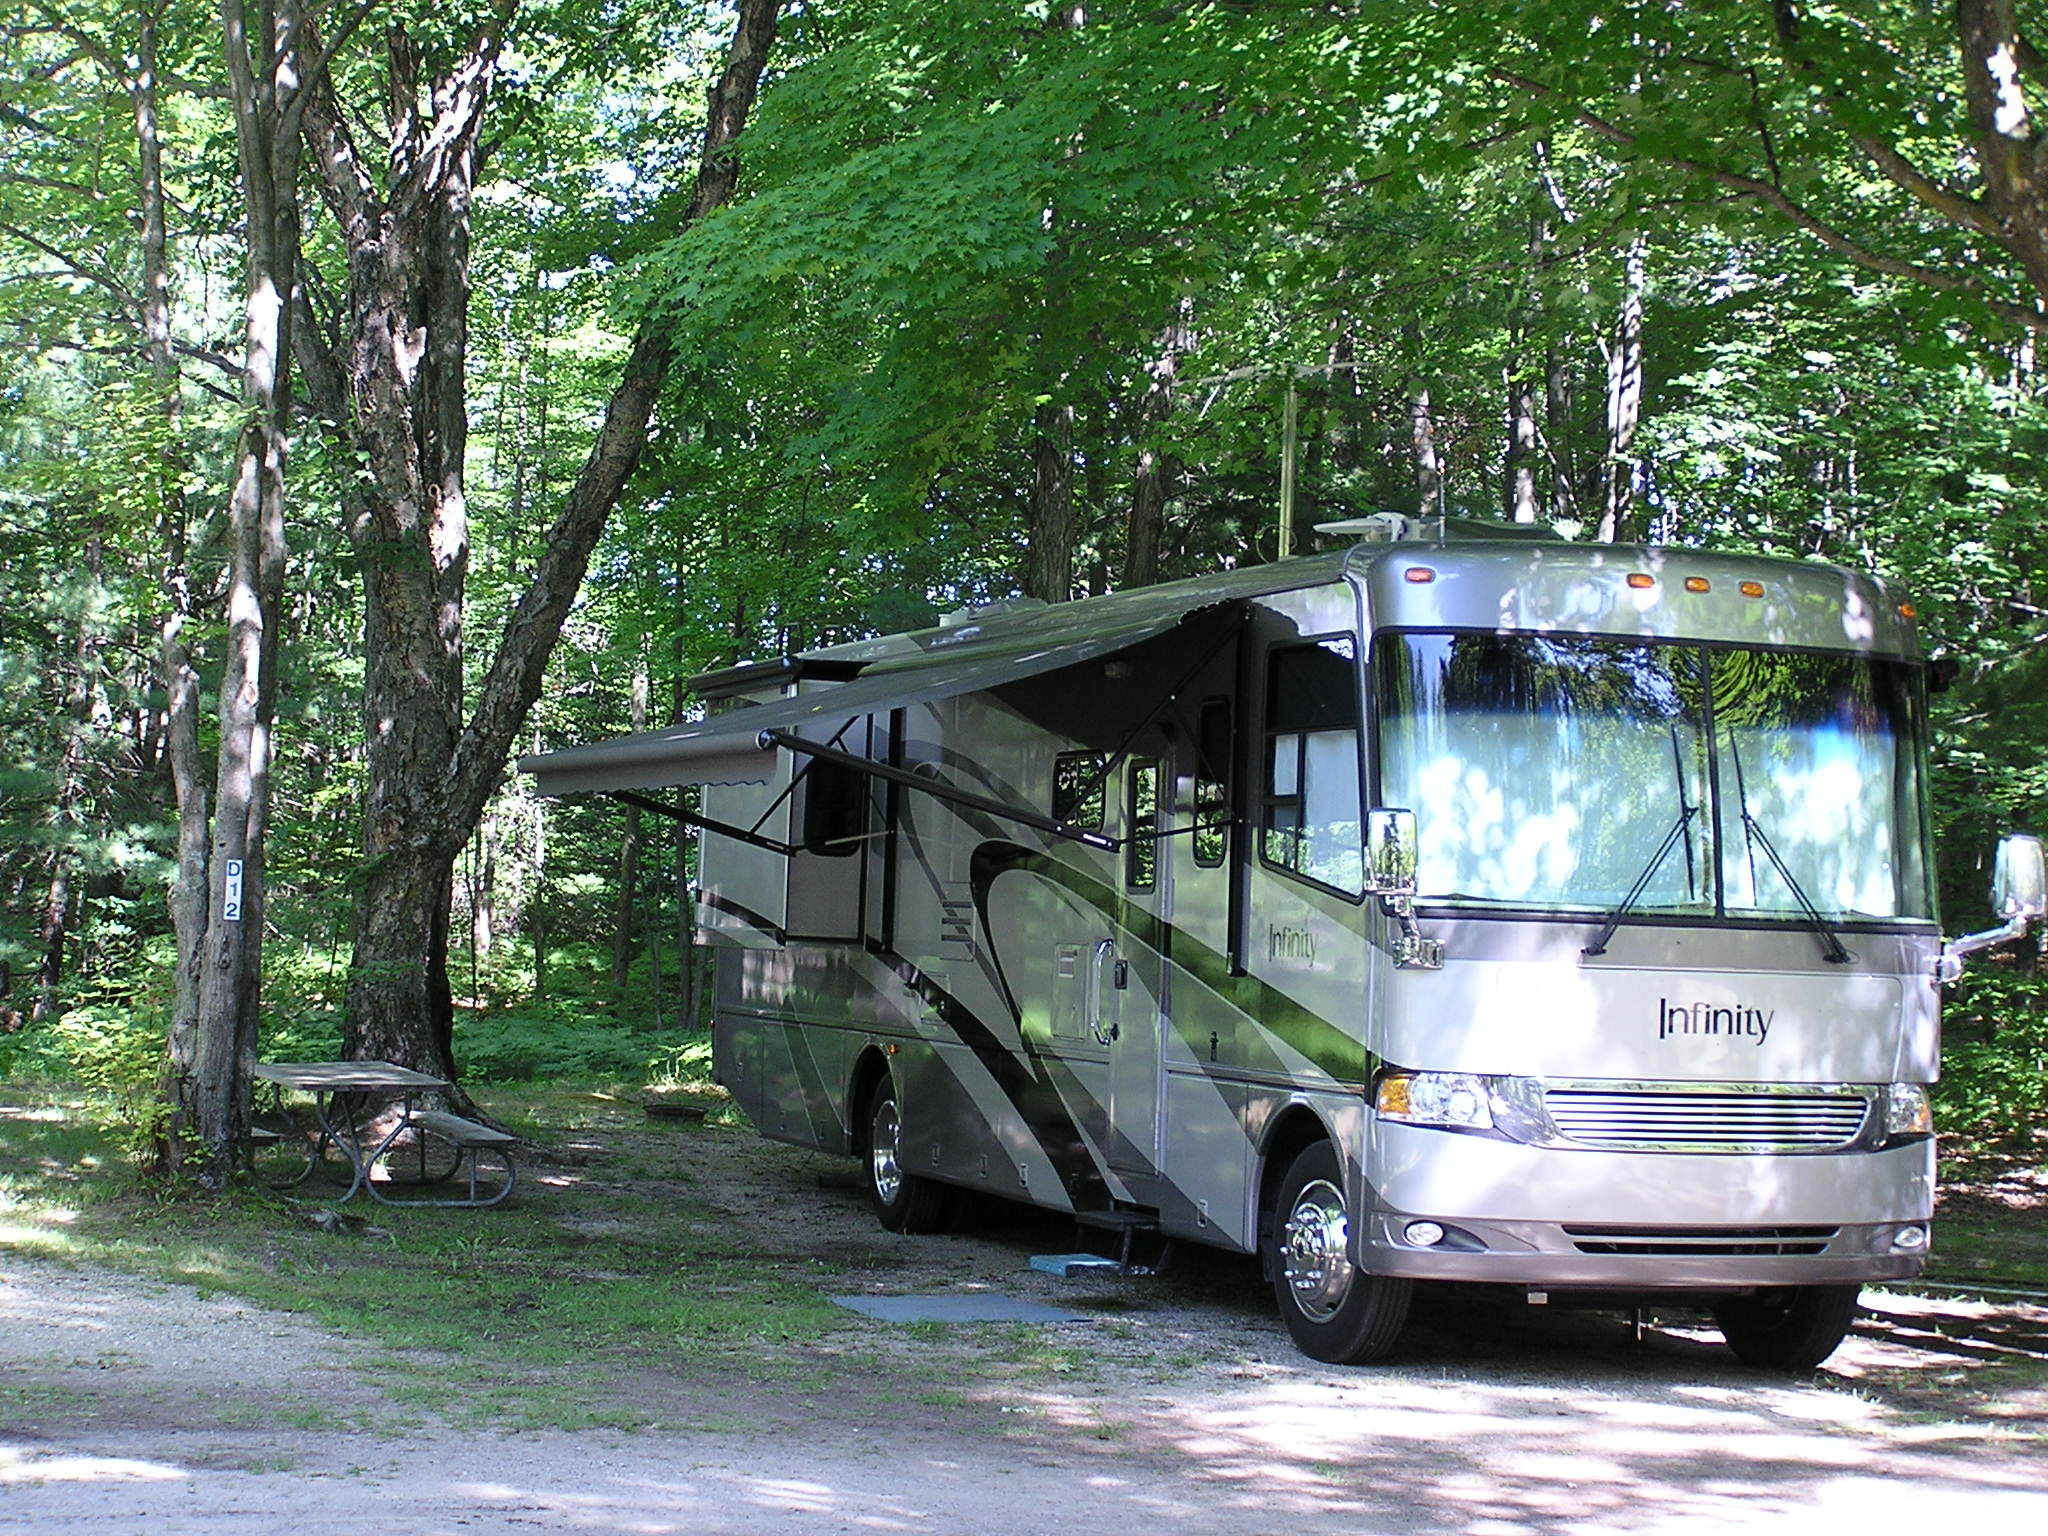 Many Large Back In Or Pull Thru Sites For Larger RVs Nice Wooded And Some With Cement Pads Cable TV Available On All Full Hook Up